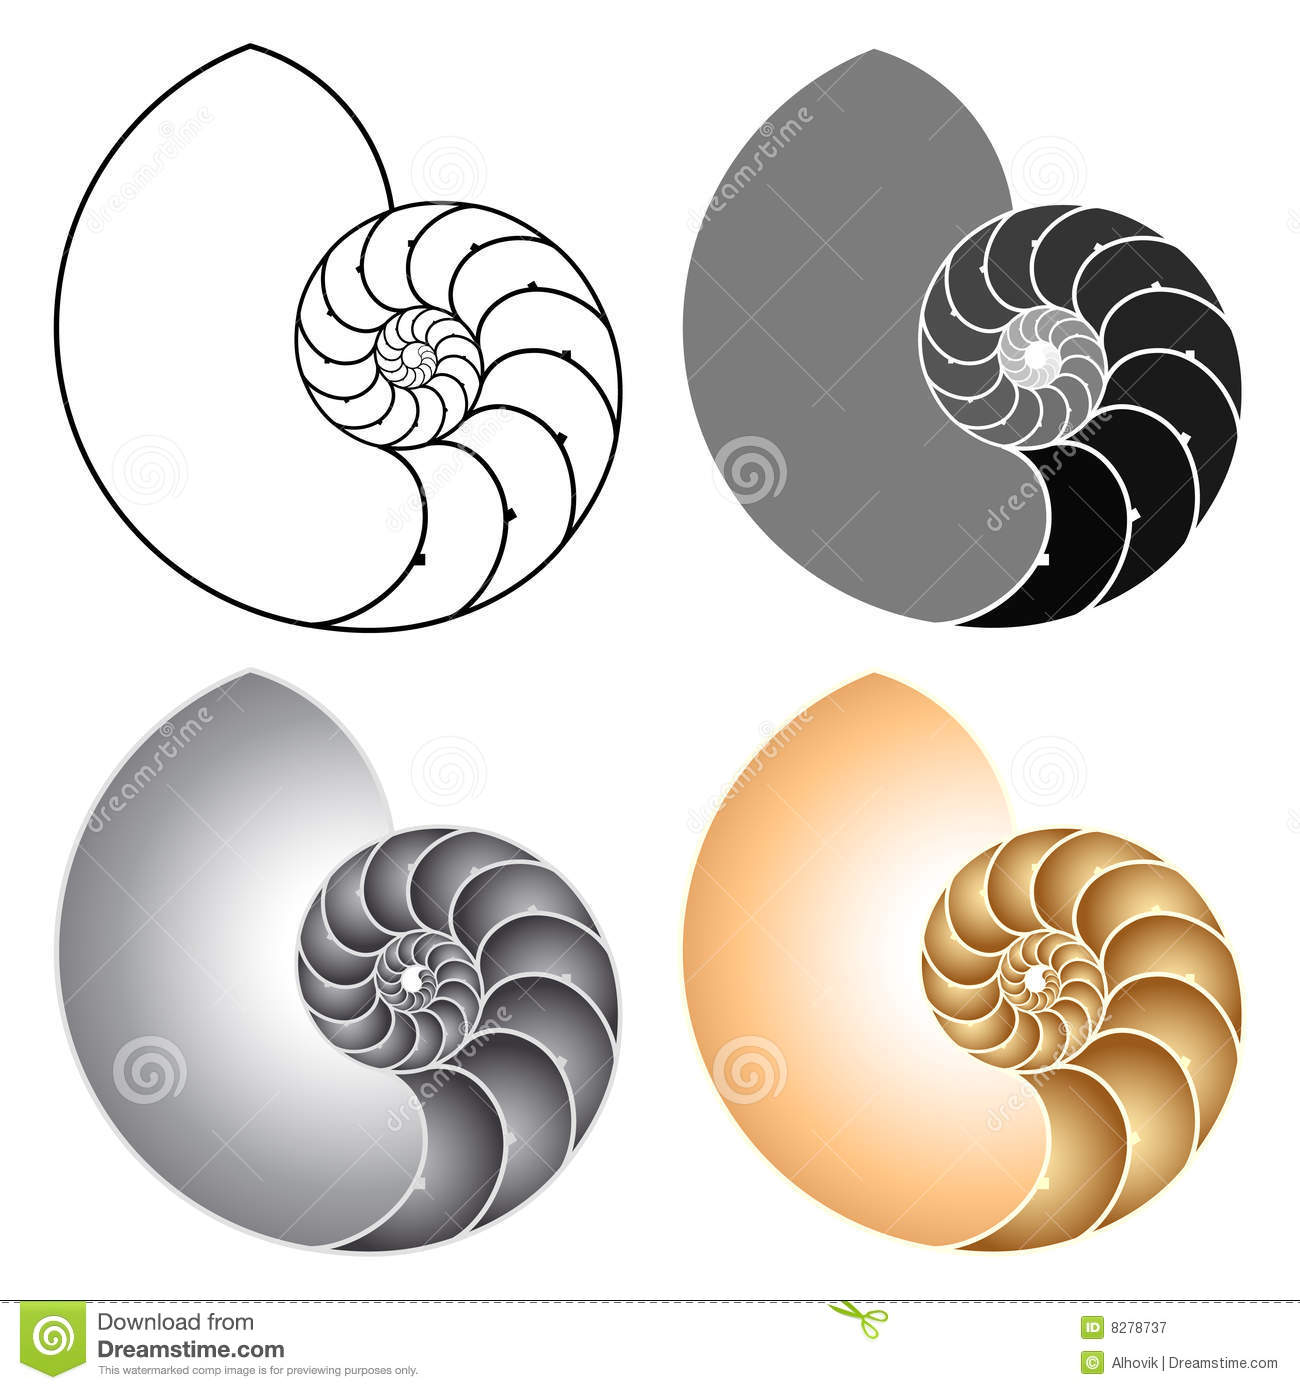 Stock vector illustration of. Spiral clipart shell nautilus png black and white download